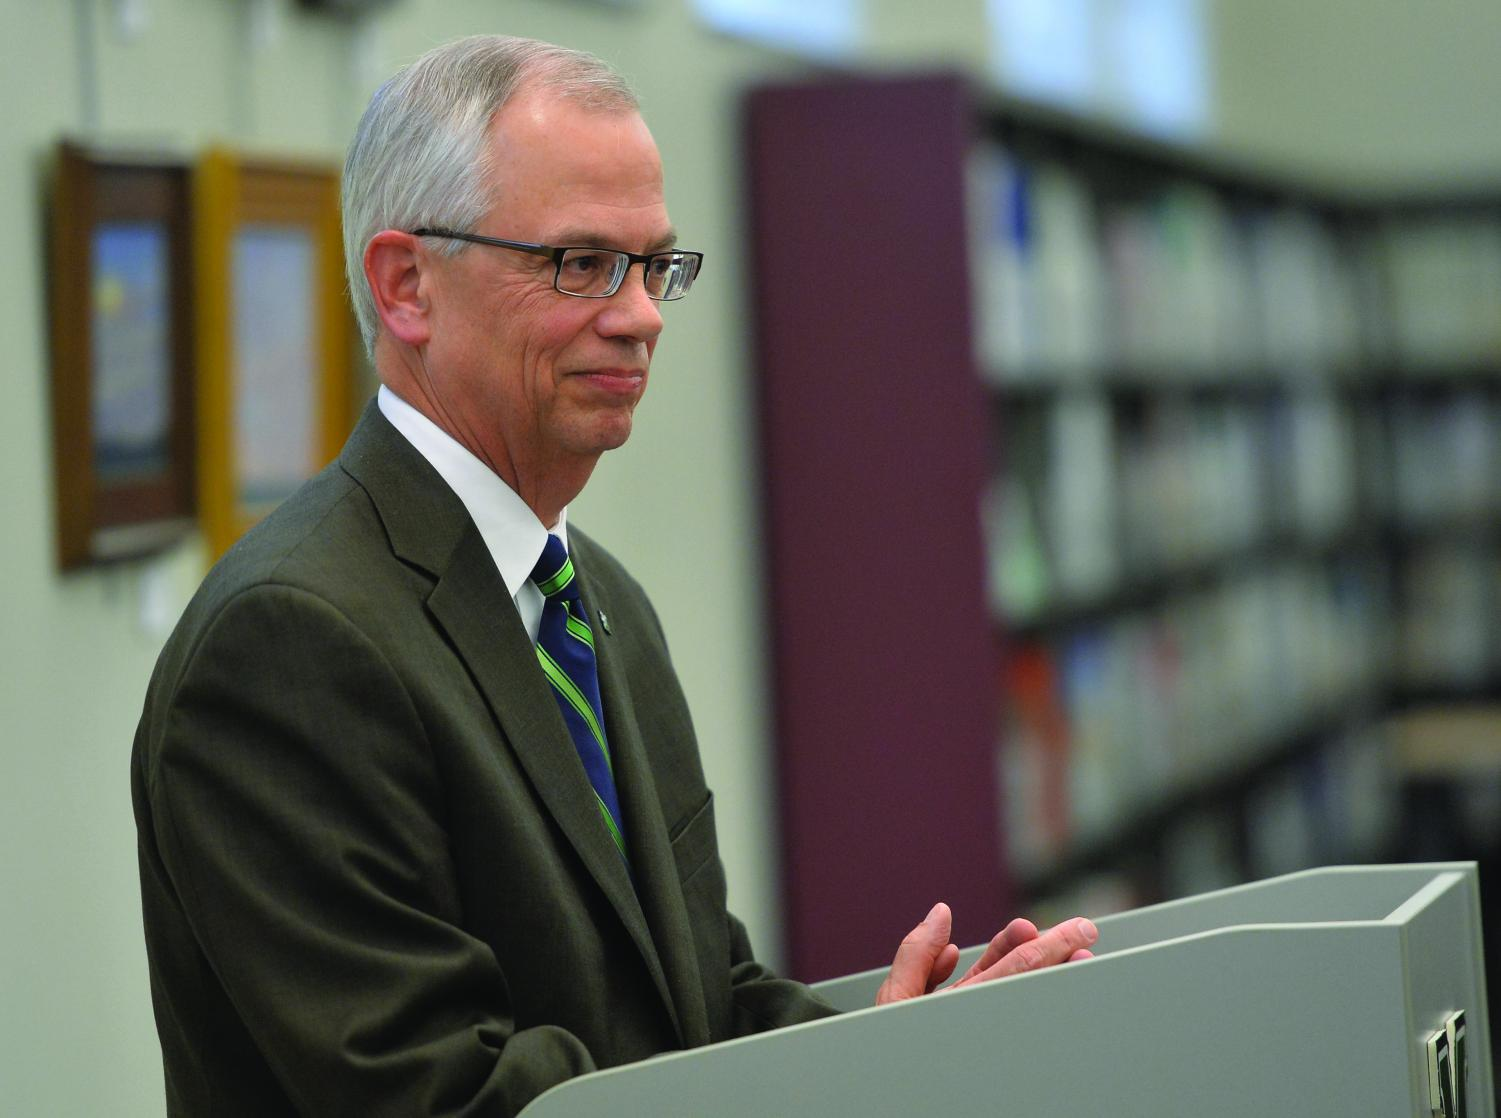 Marshall University President Jerry Gilbert continues college recruitment trip around the state. He has already visited 25 different high schools and plans to visit 12 more to complete all of the Southern West Virginia schools.